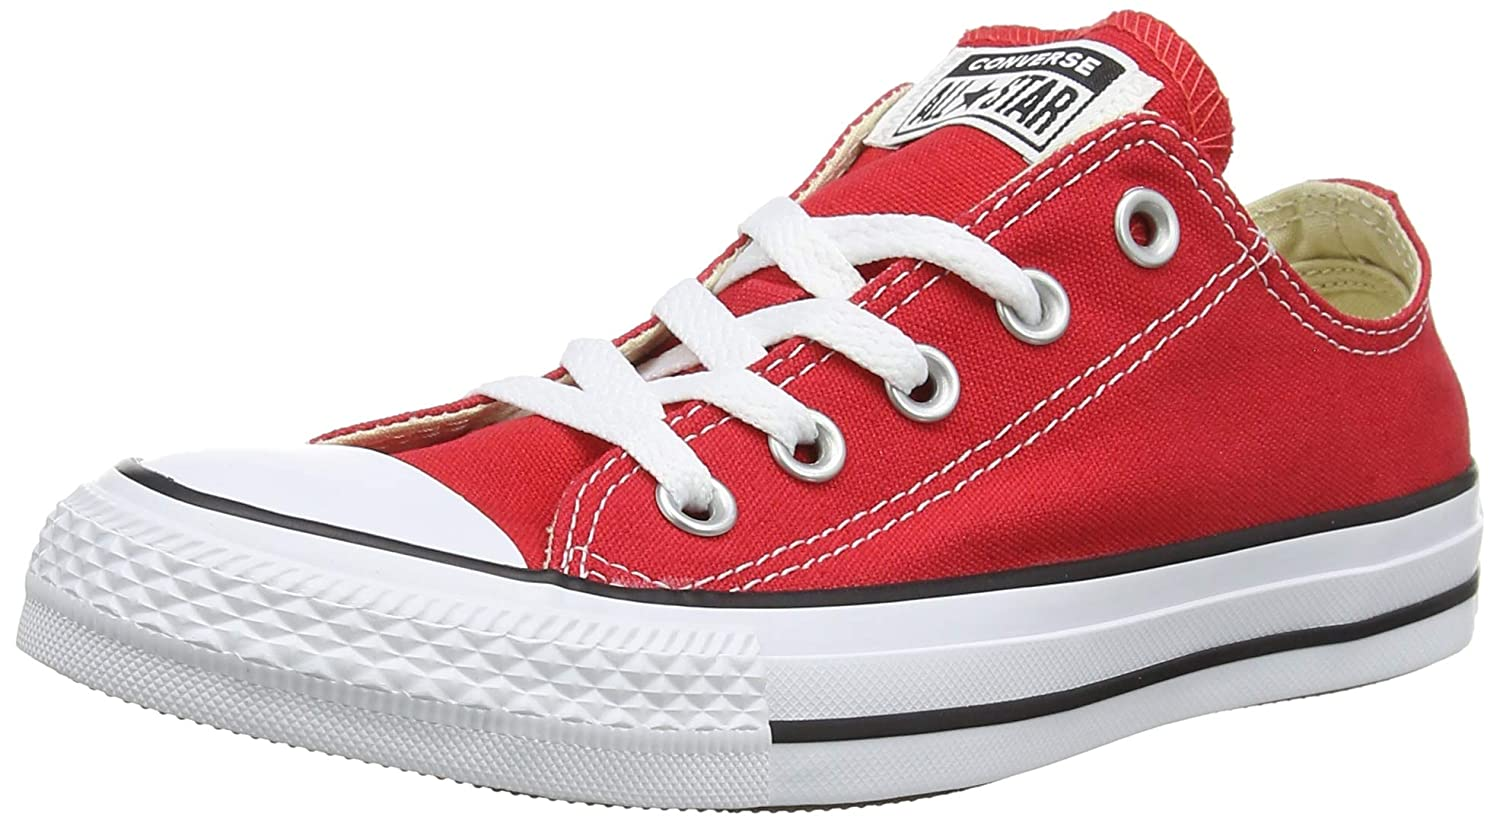 Converse Chuck Taylor All All Rouge Adulte Star Core, Baskets Mixte Adulte Rouge b9fe0bf - boatplans.space